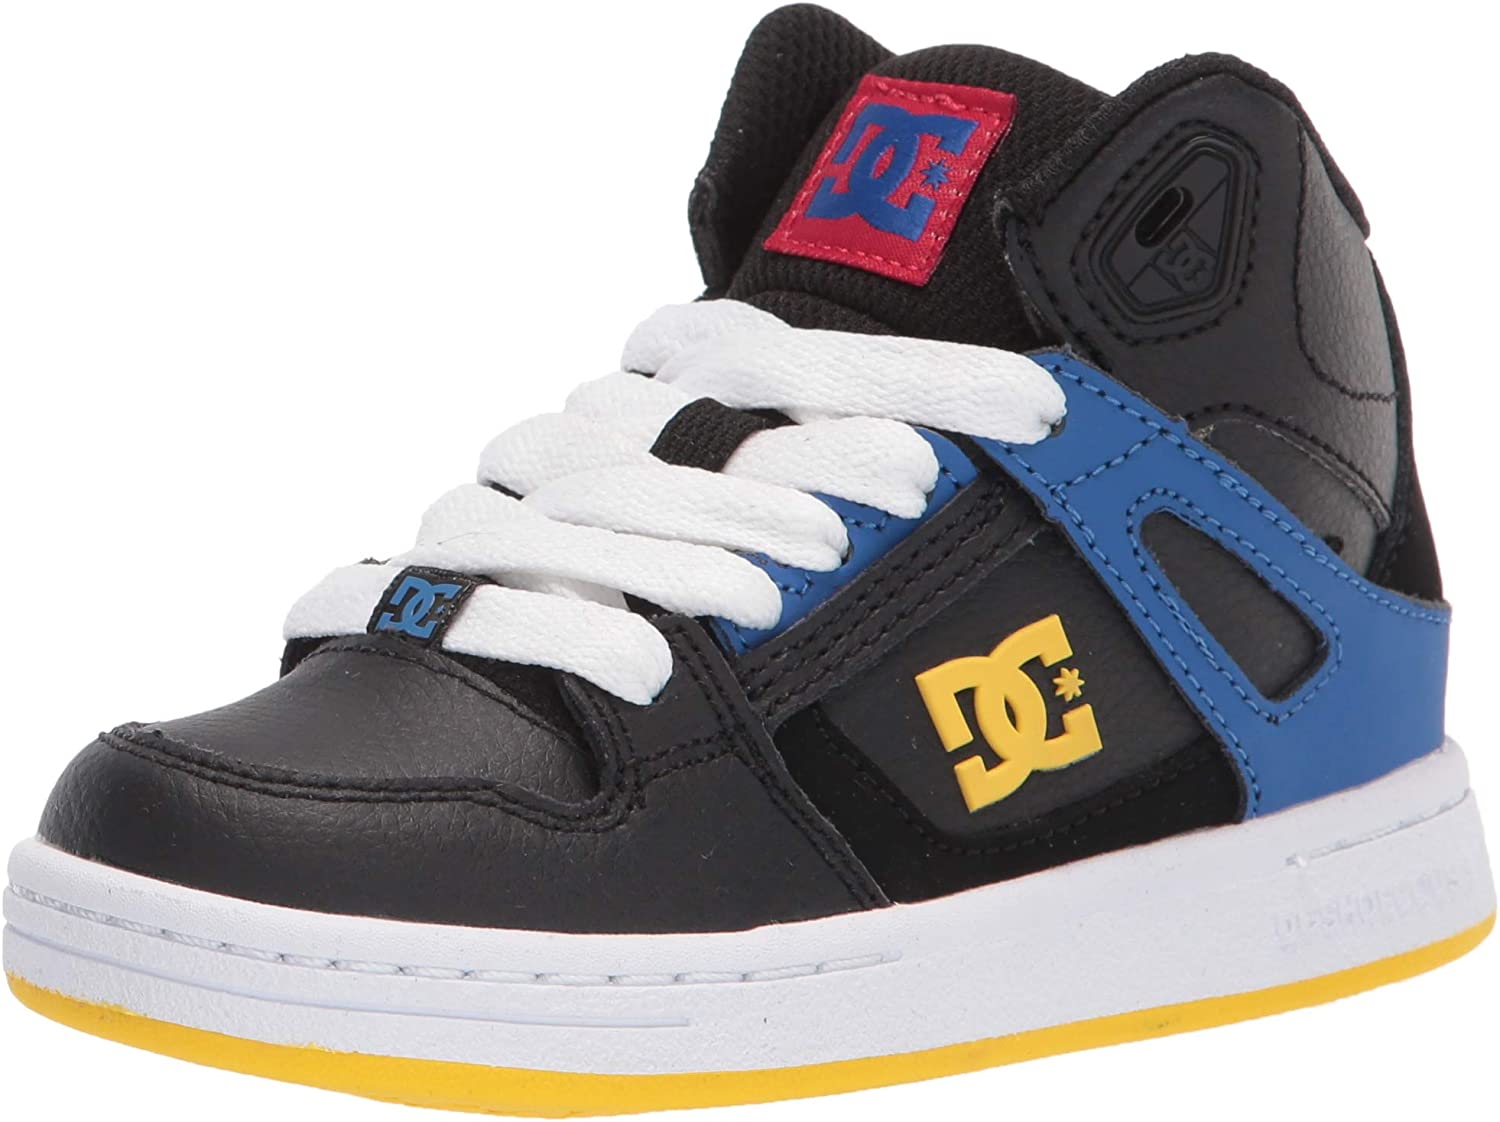 DC Max 72% OFF Austin Mall Unisex-Child Pure Shoe HIGH-TOP Skate